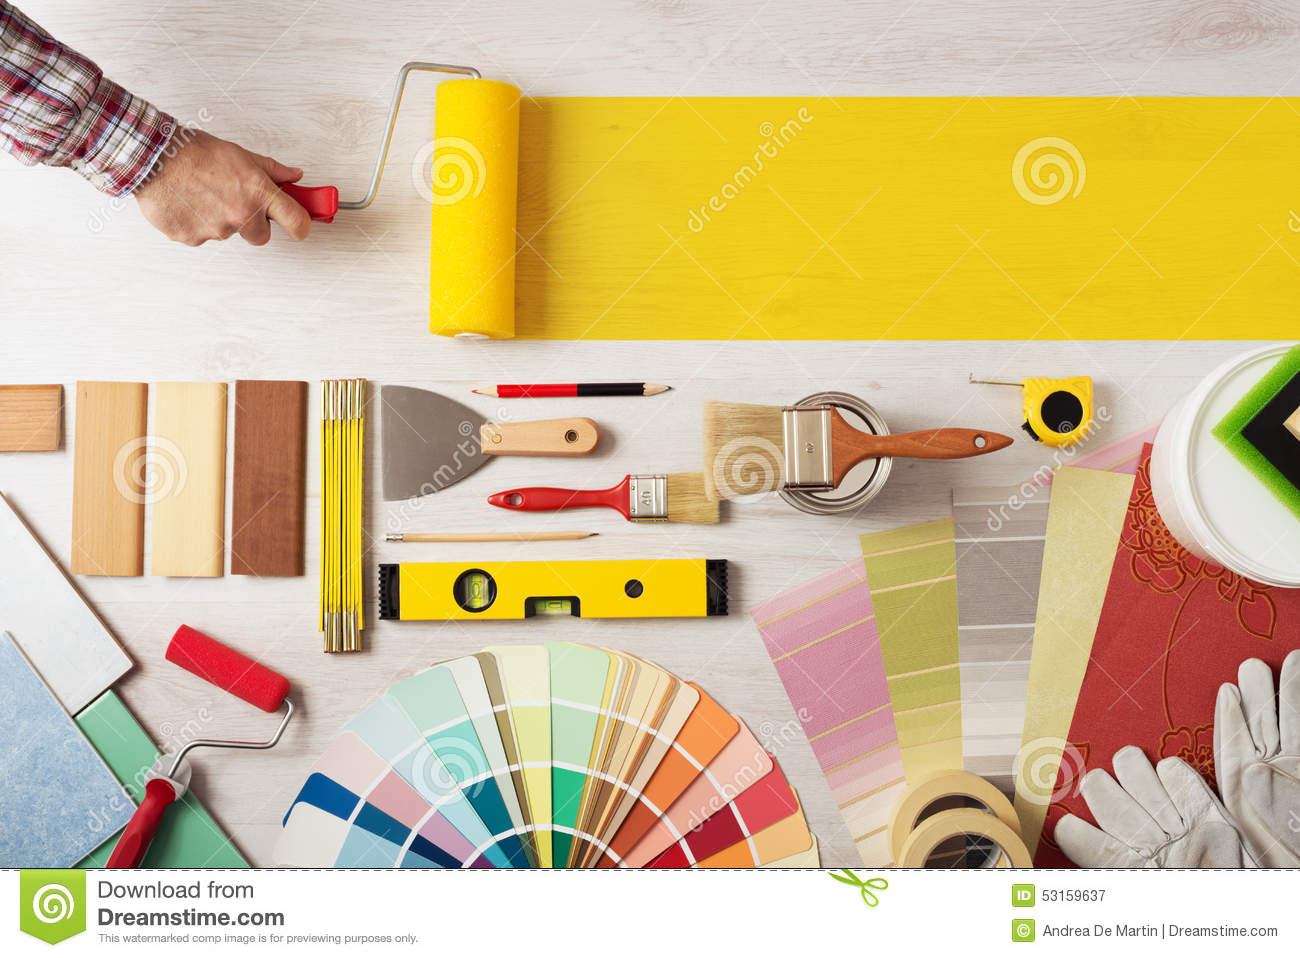 Painting And Decorating Diy Banner Stock Image Image Of Renovation Hands 53159637,Standard House Brick Dimensions